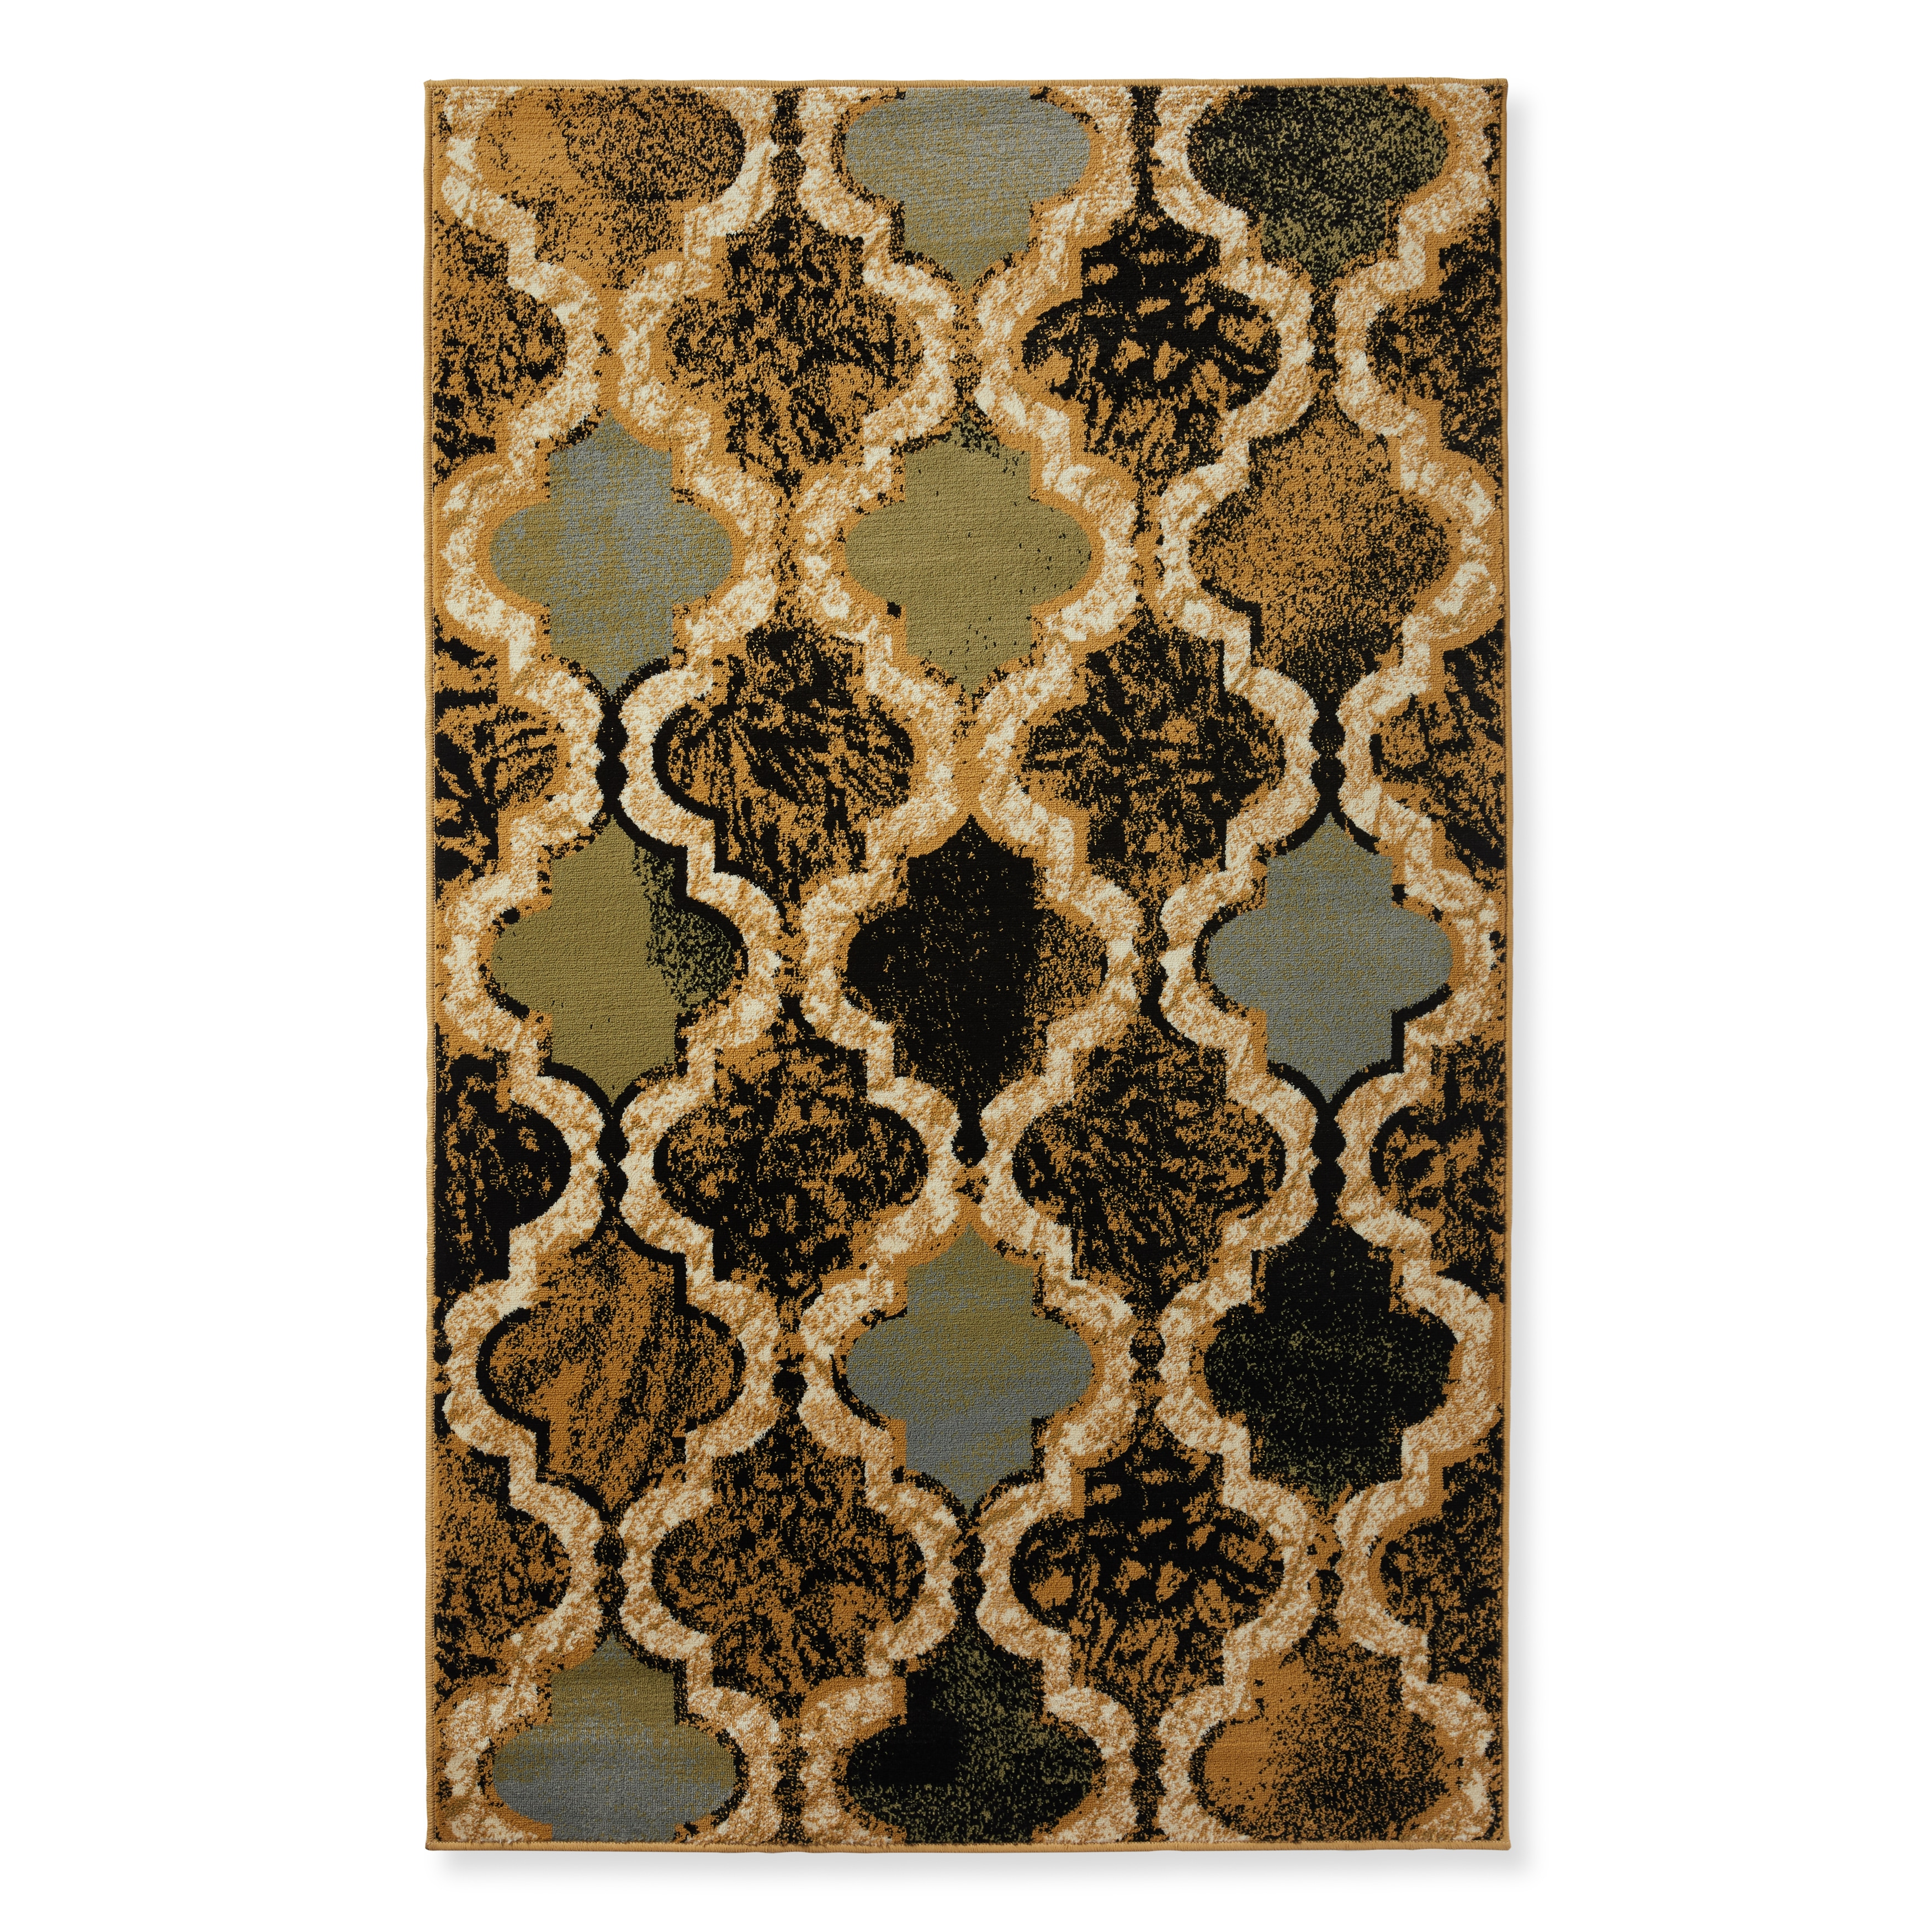 3cdd55388 Shop Superior Modern Viking Area Rug - On Sale - Free Shipping Today -  Overstock - 13208583